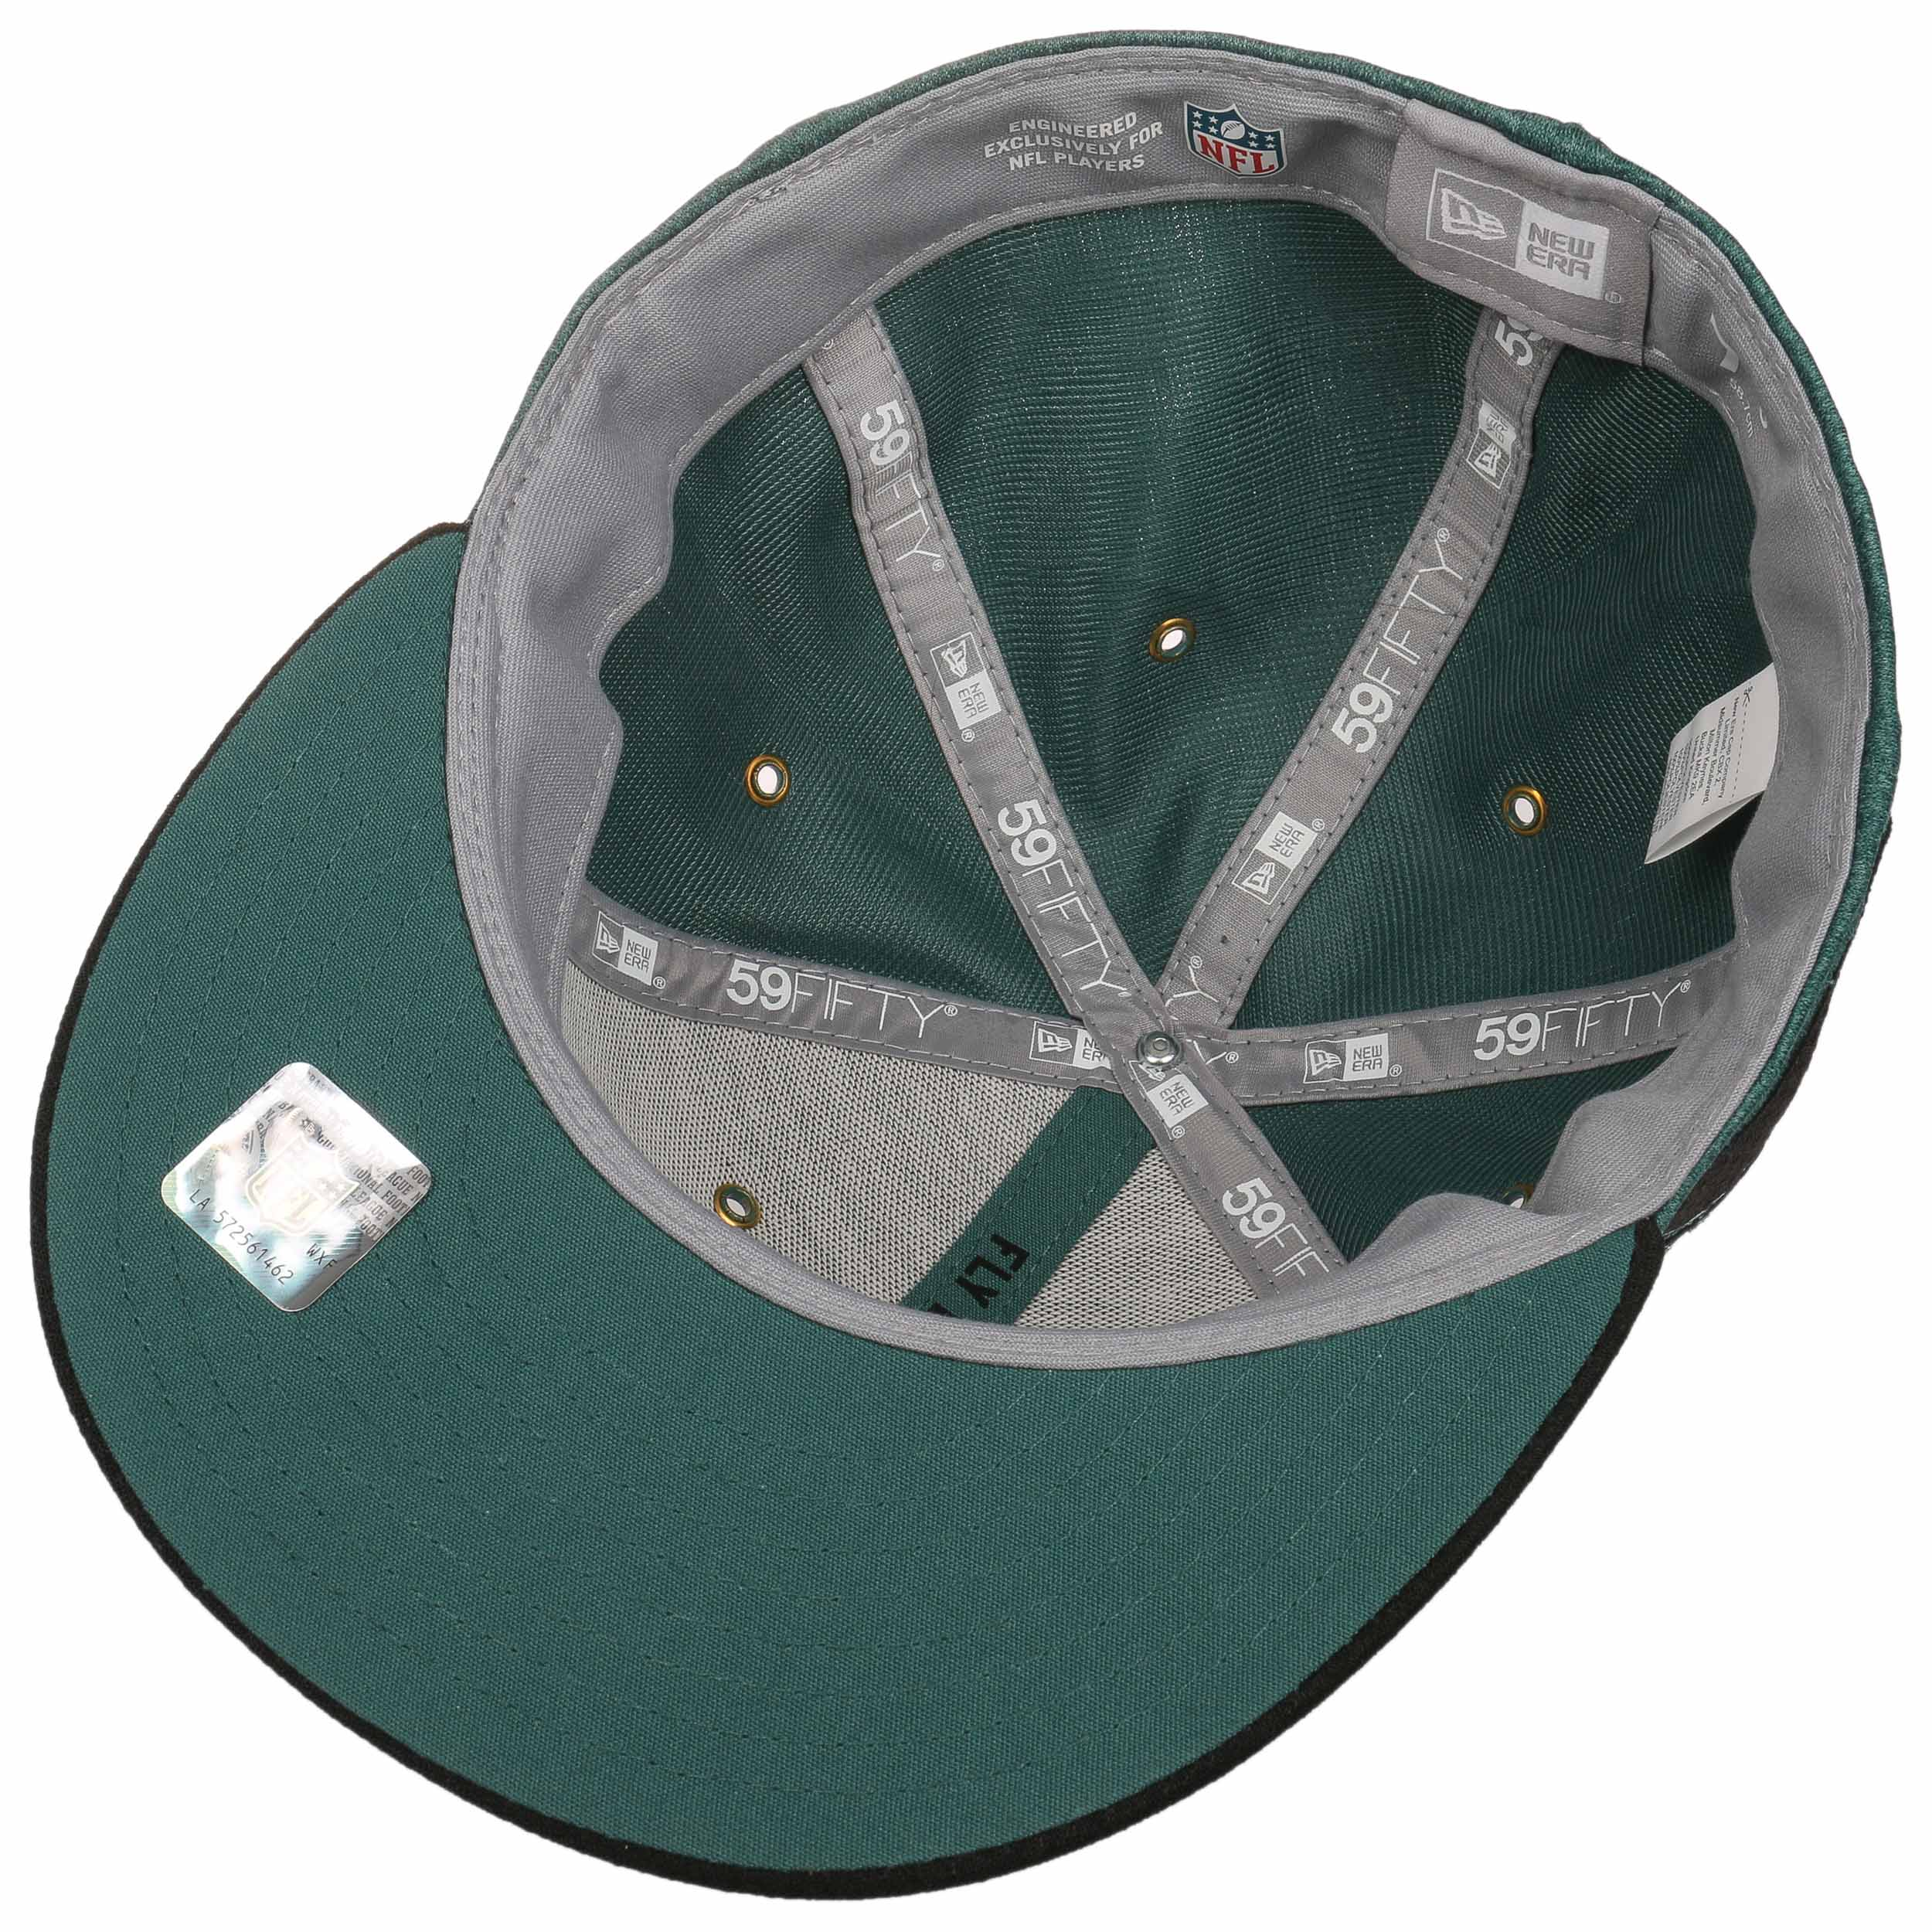 69797acb3b7 ... 59Fifty On-Field 18 Eagles Cap by New Era - dark green 3 ...